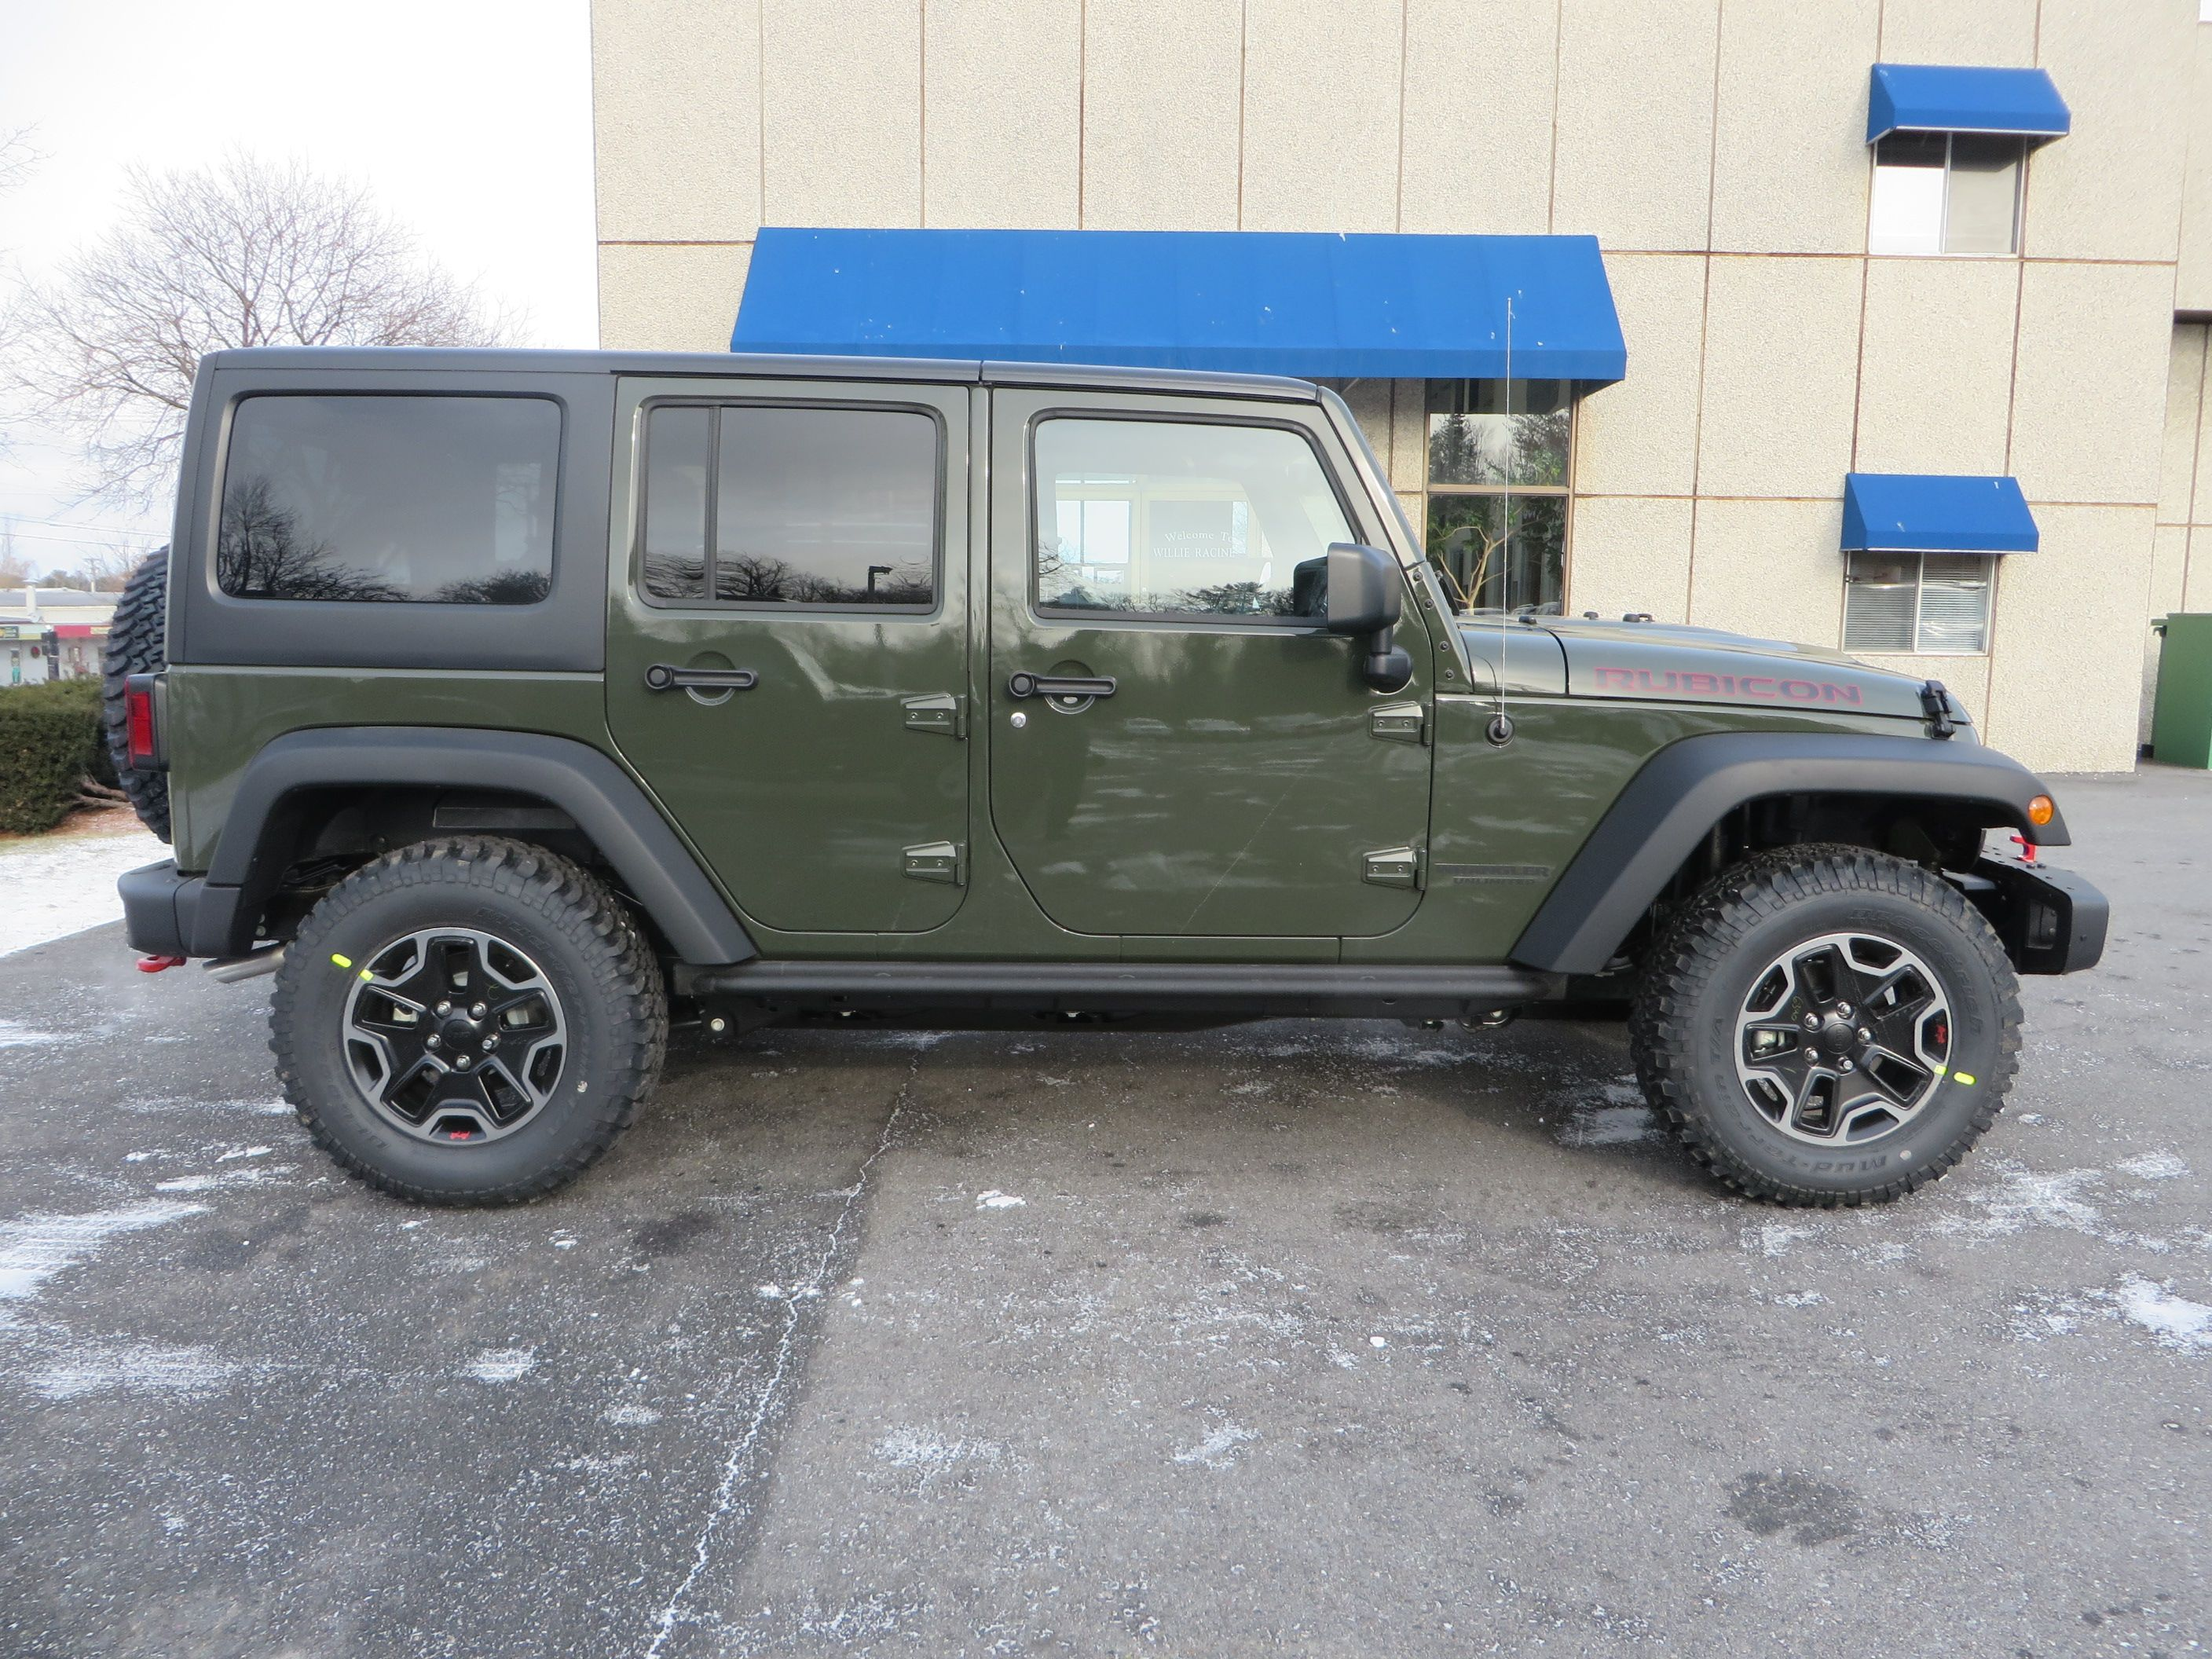 2015 Jeep Wrangler Unlimited Rubicon in Tank Green. Just